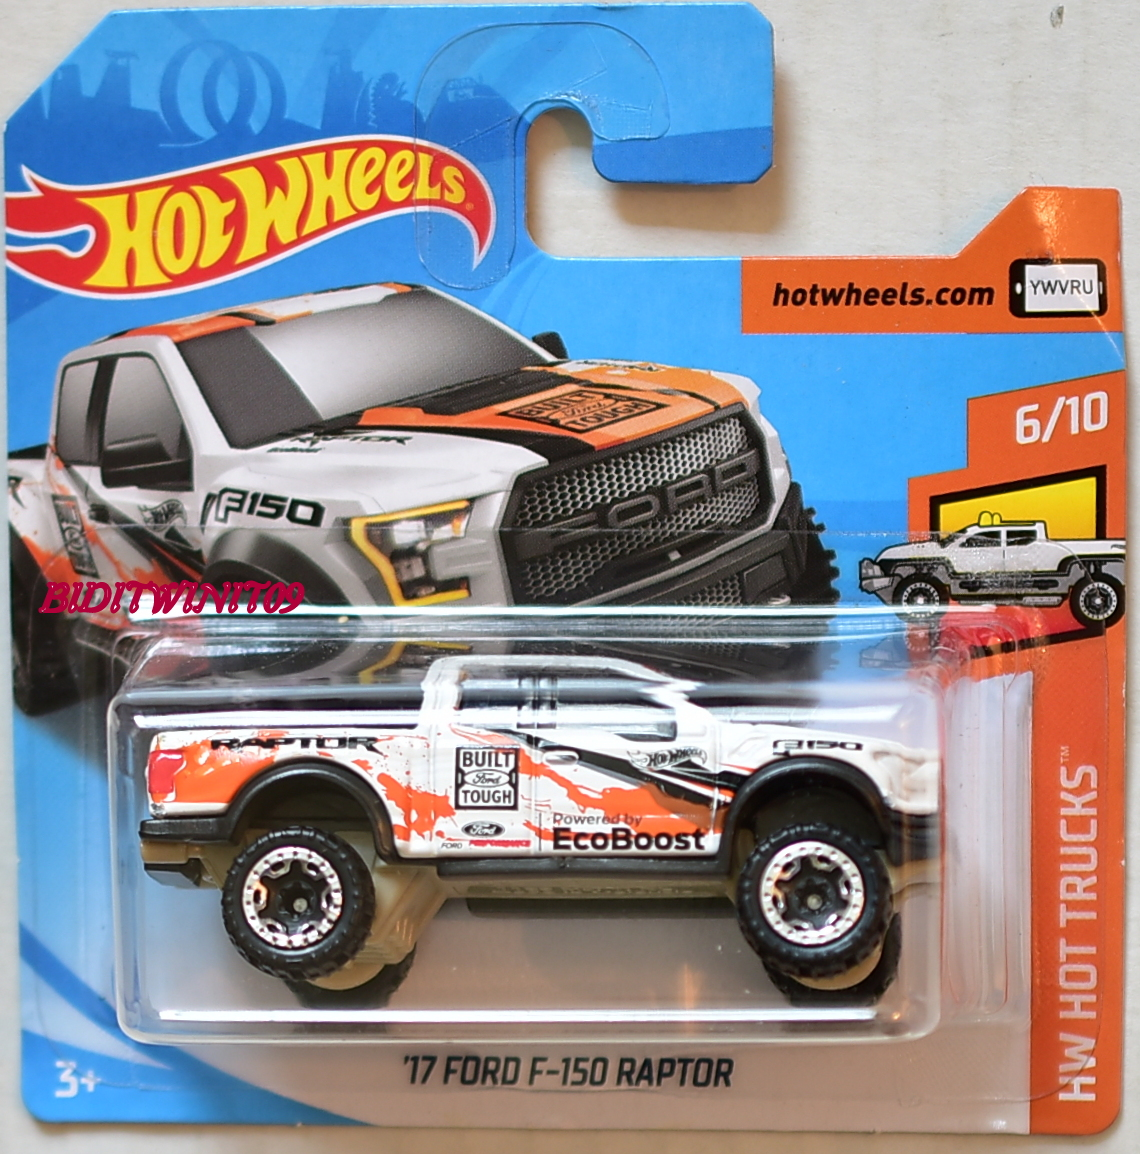 hot wheels 2018 hw hot trucks 39 17 ford f 150 raptor 6 10 short card 0005311. Black Bedroom Furniture Sets. Home Design Ideas